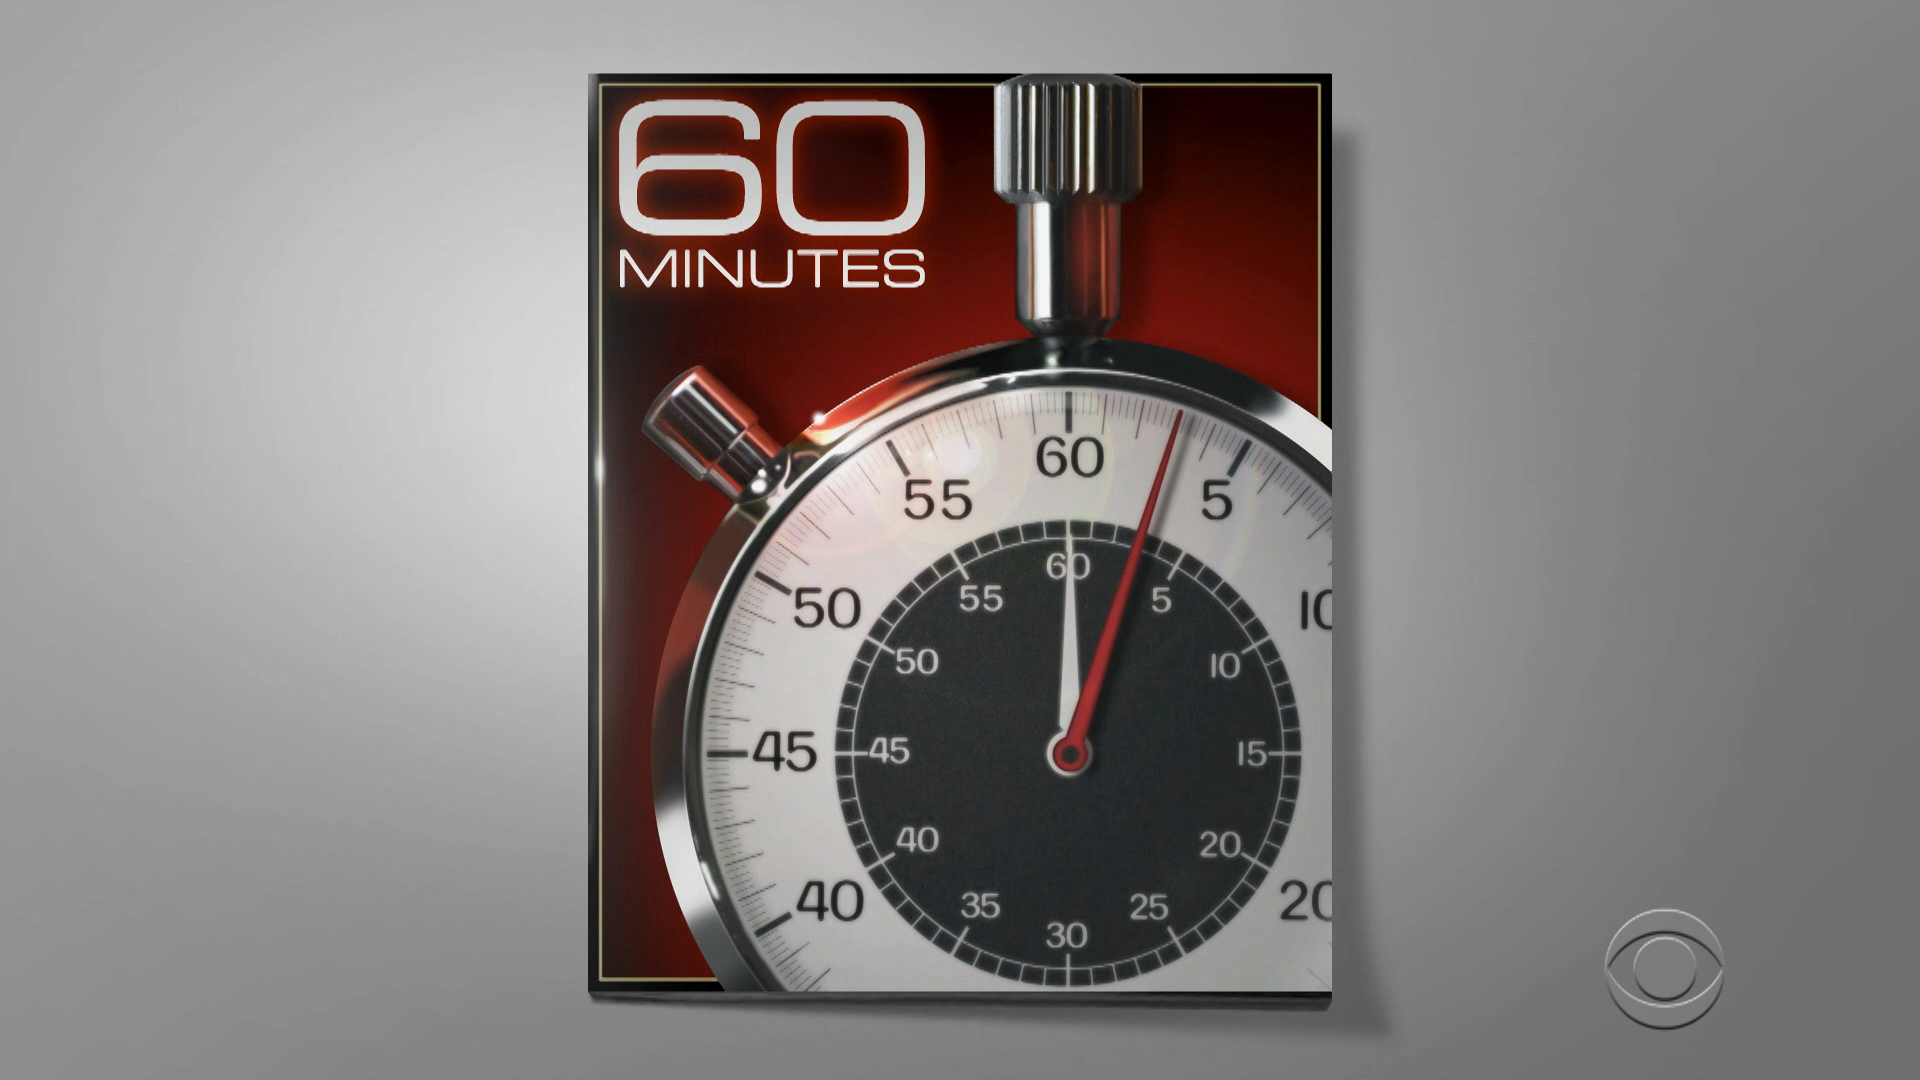 60 Minutes Season 51 Episode 24